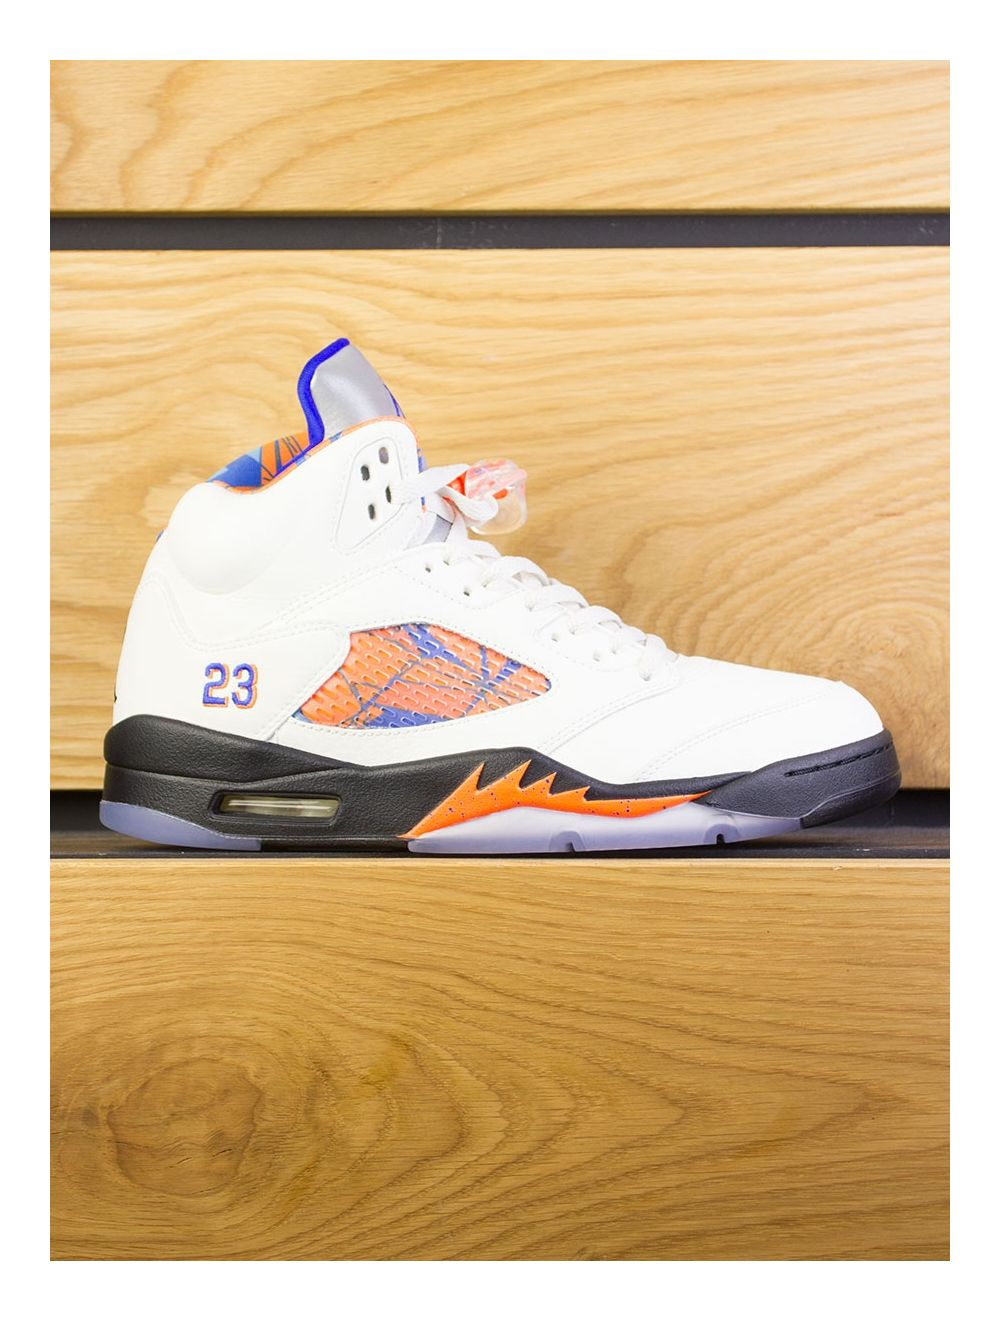 quality design c3ddf f4dec nike-air-jordan-5-hyper-royal-orange-01.jpg